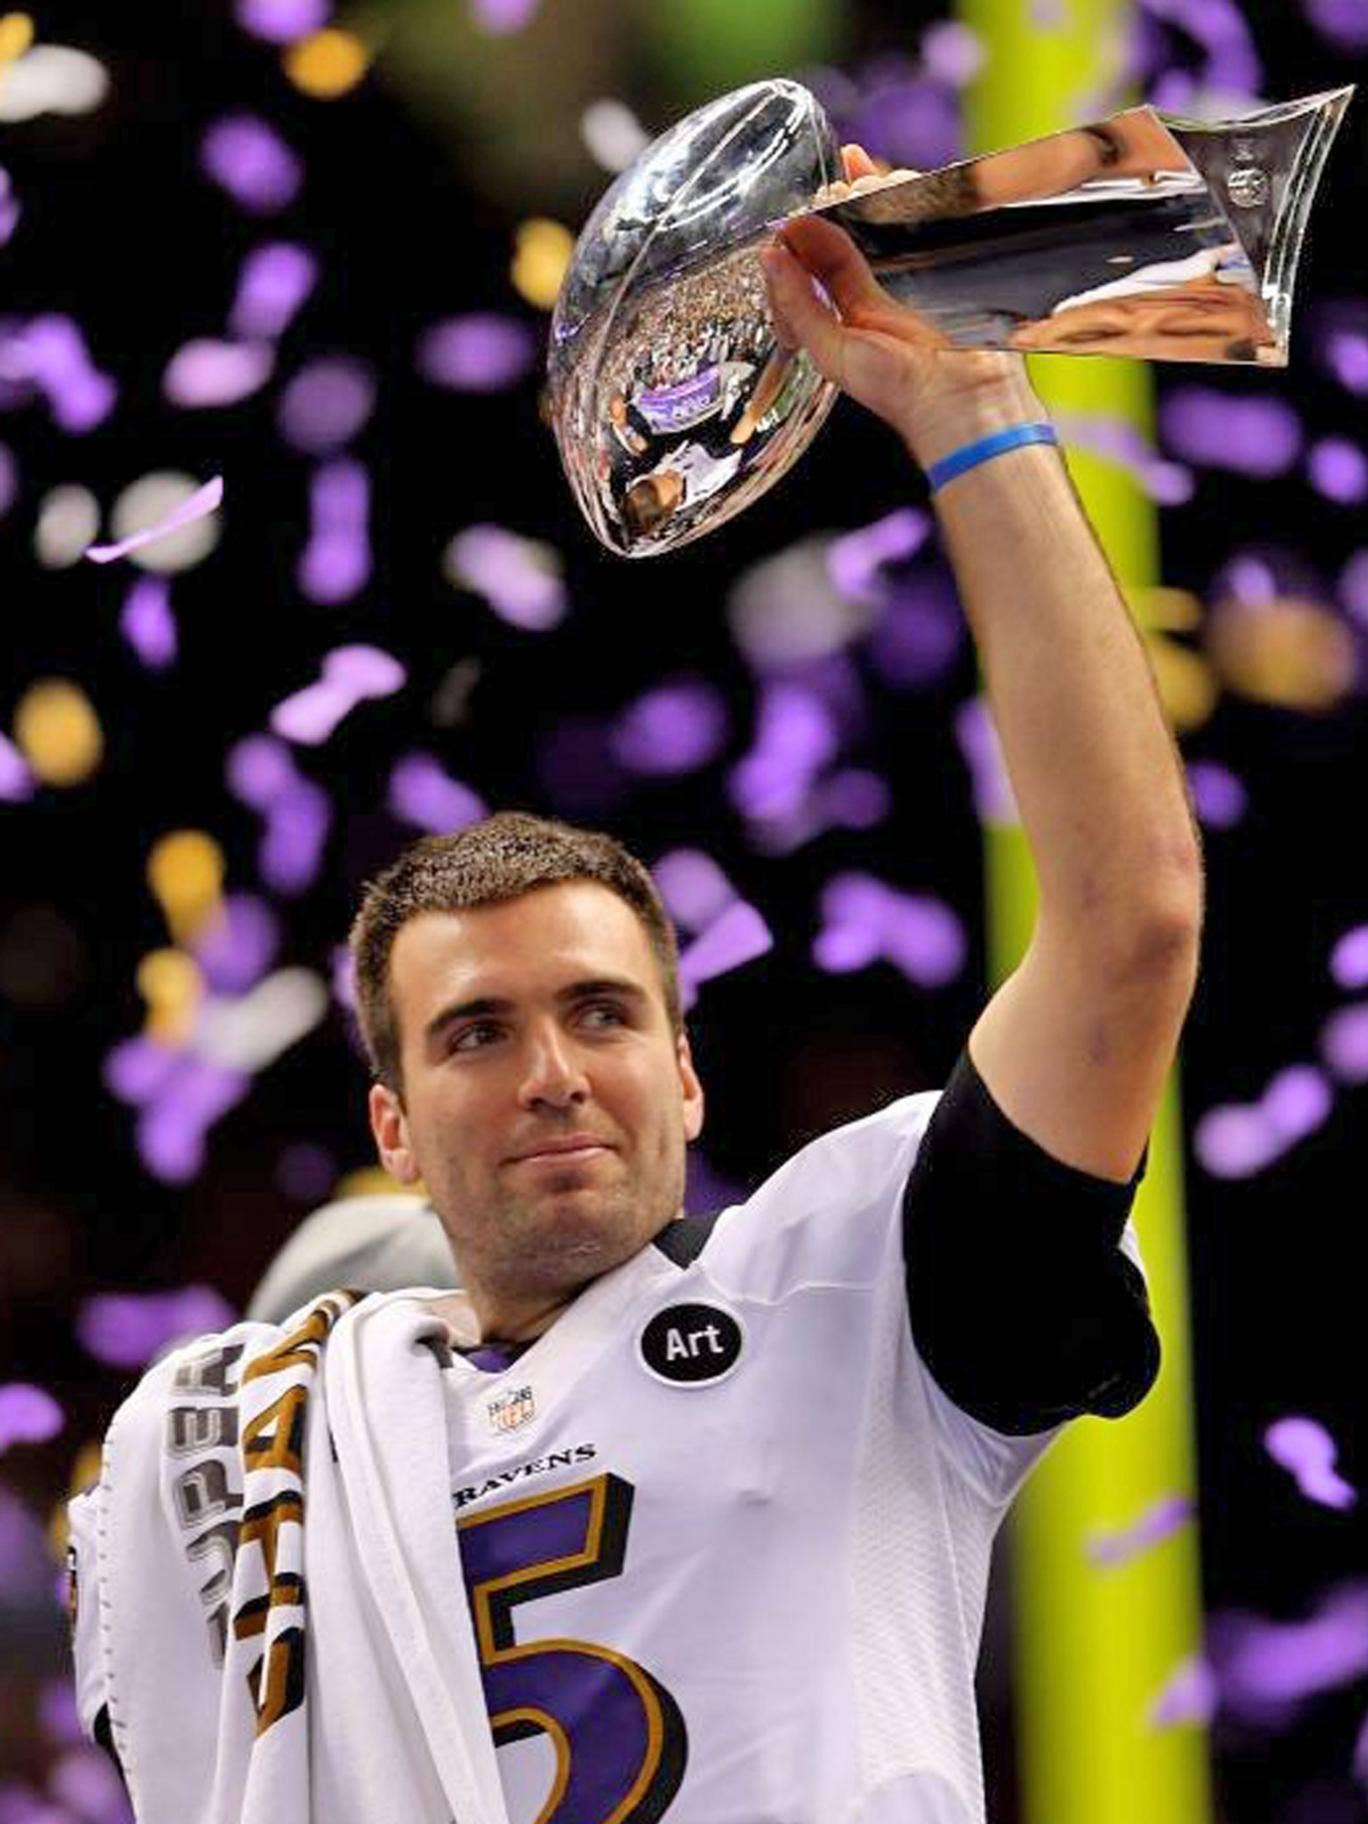 Baltimore quarterback Joe Flacco gets his hands on the Vince Lombardi Trophy